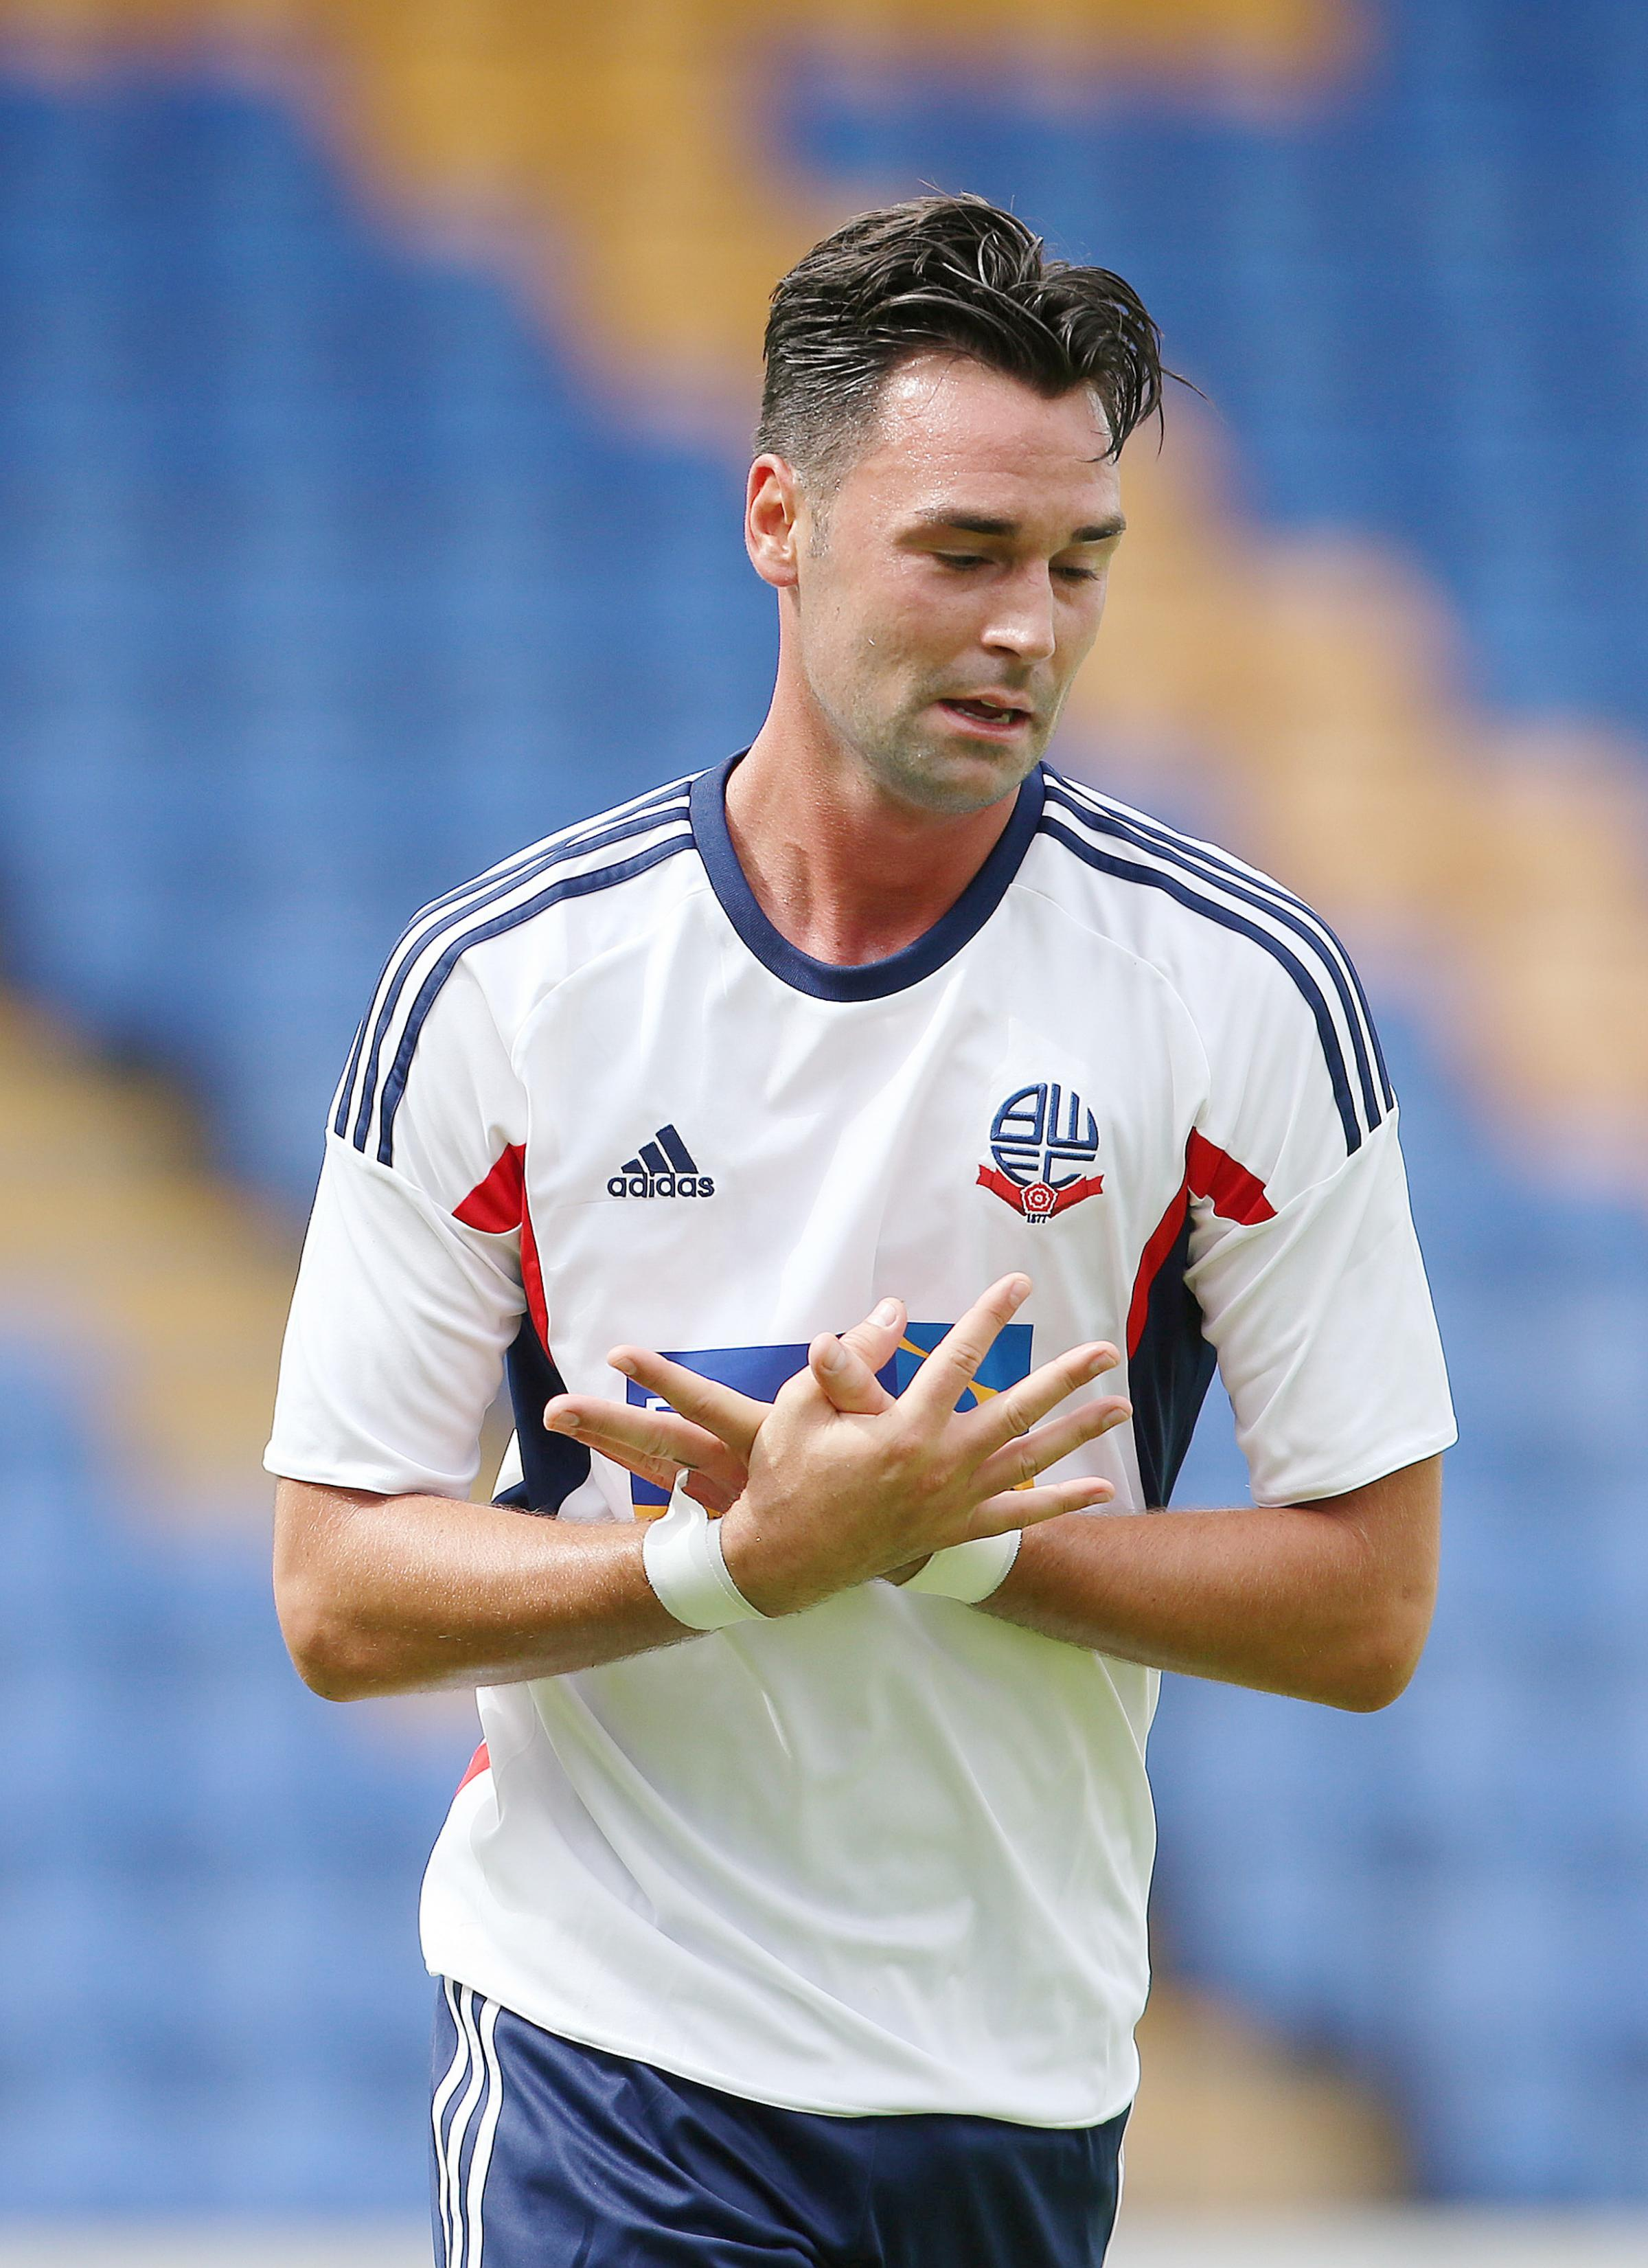 Former Wanderer Chris Eagles